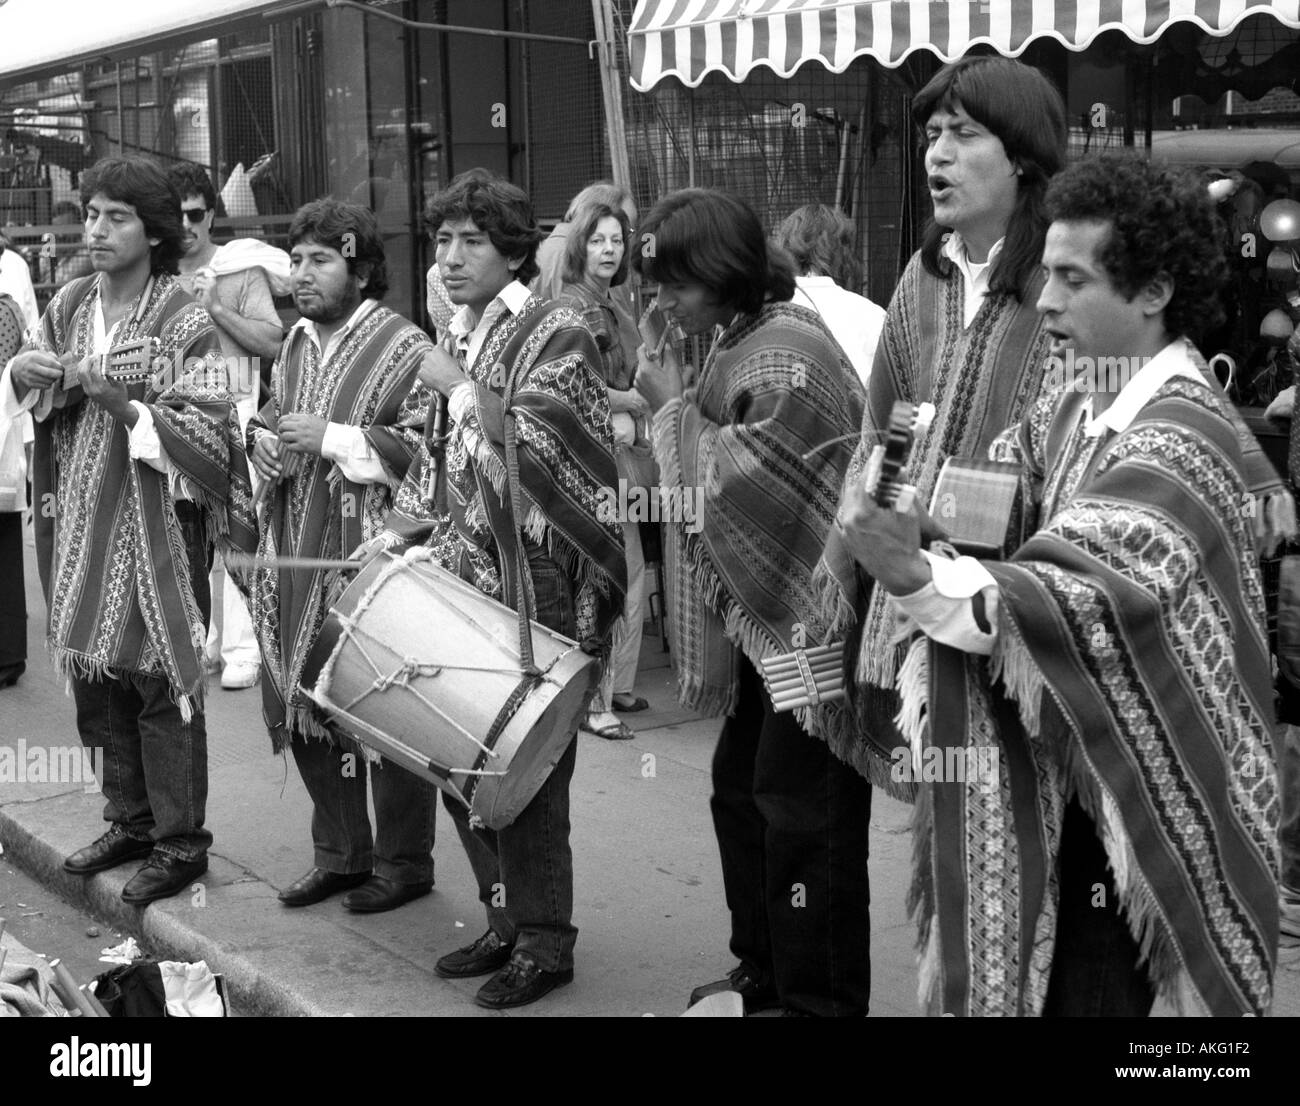 Chilean street musicians Notting Hill Carnival - Stock Image